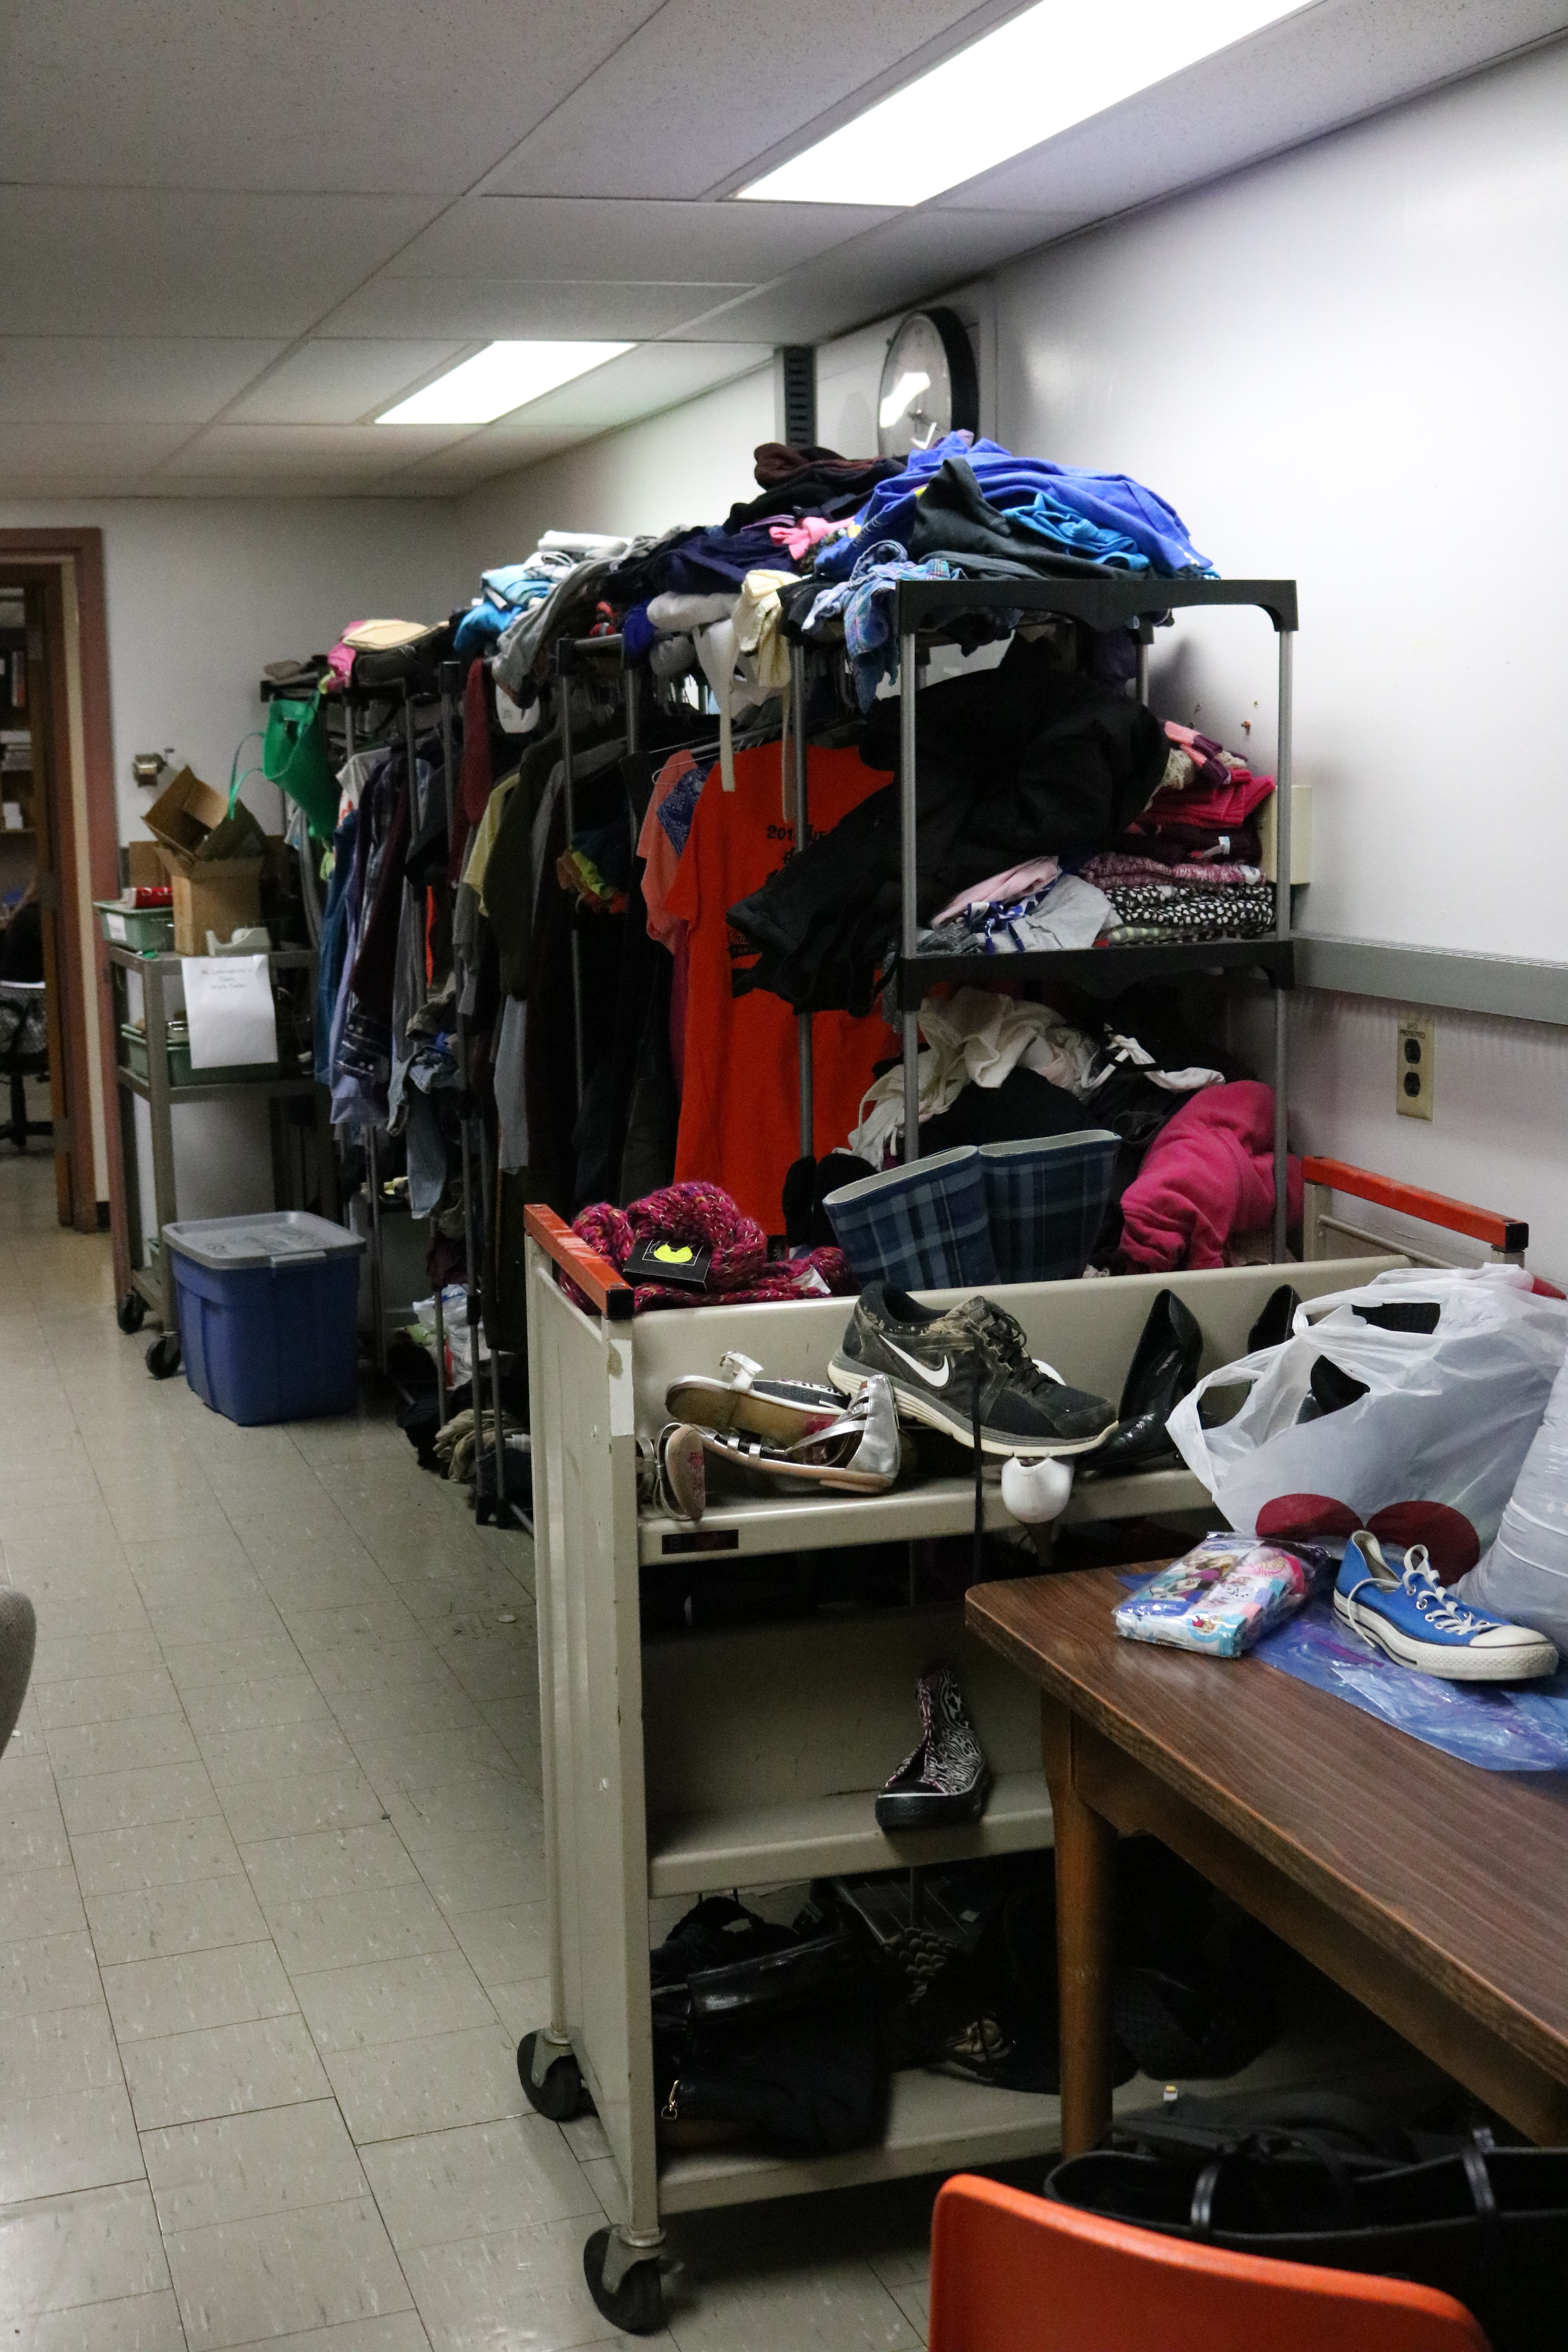 A large room filled with closet organizers and clothing.